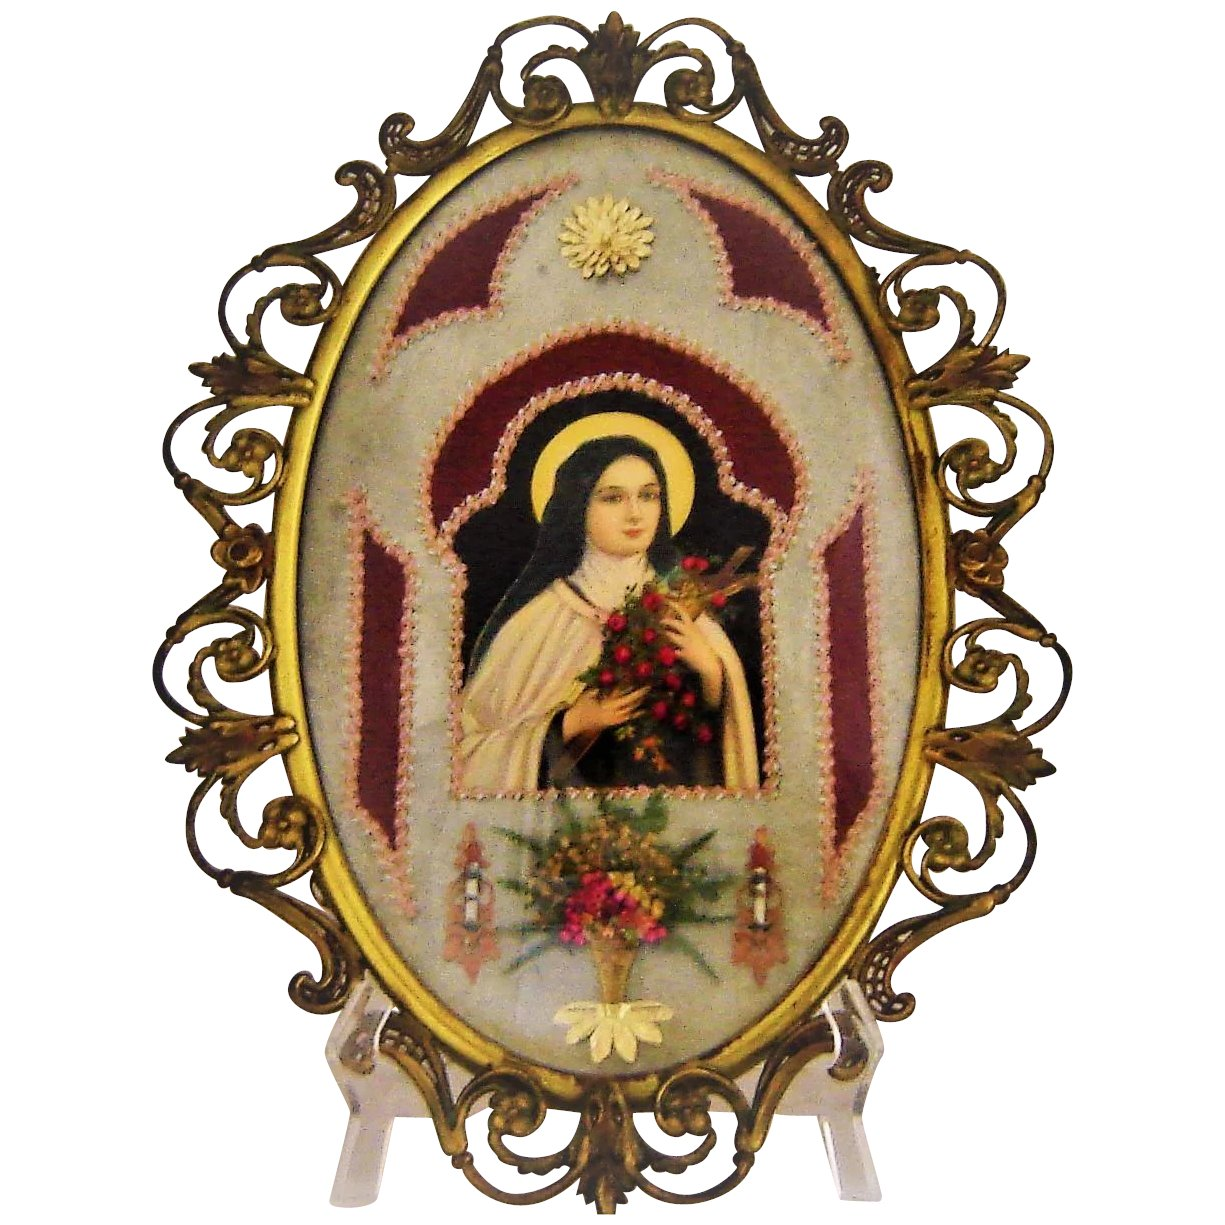 Vintage st theresa bubble glass brass frame embellished print vintage st theresa bubble glass brass frame embellished print click to expand jeuxipadfo Image collections